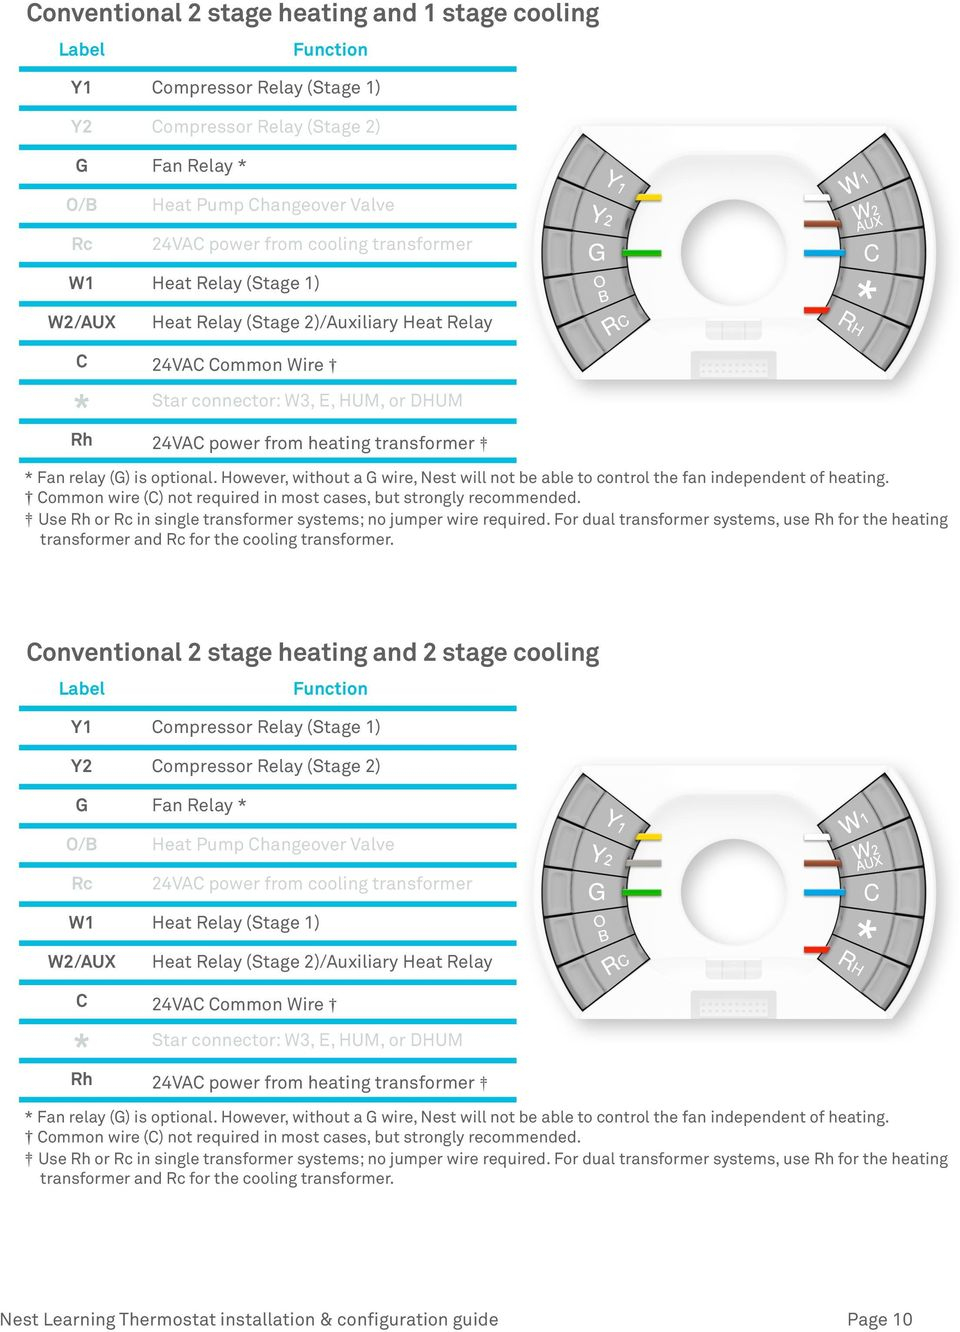 Nest Learning Thermostat Pro Installation & Configuration Guide - Pdf - Nest Wiring Diagram Jumper W2 E